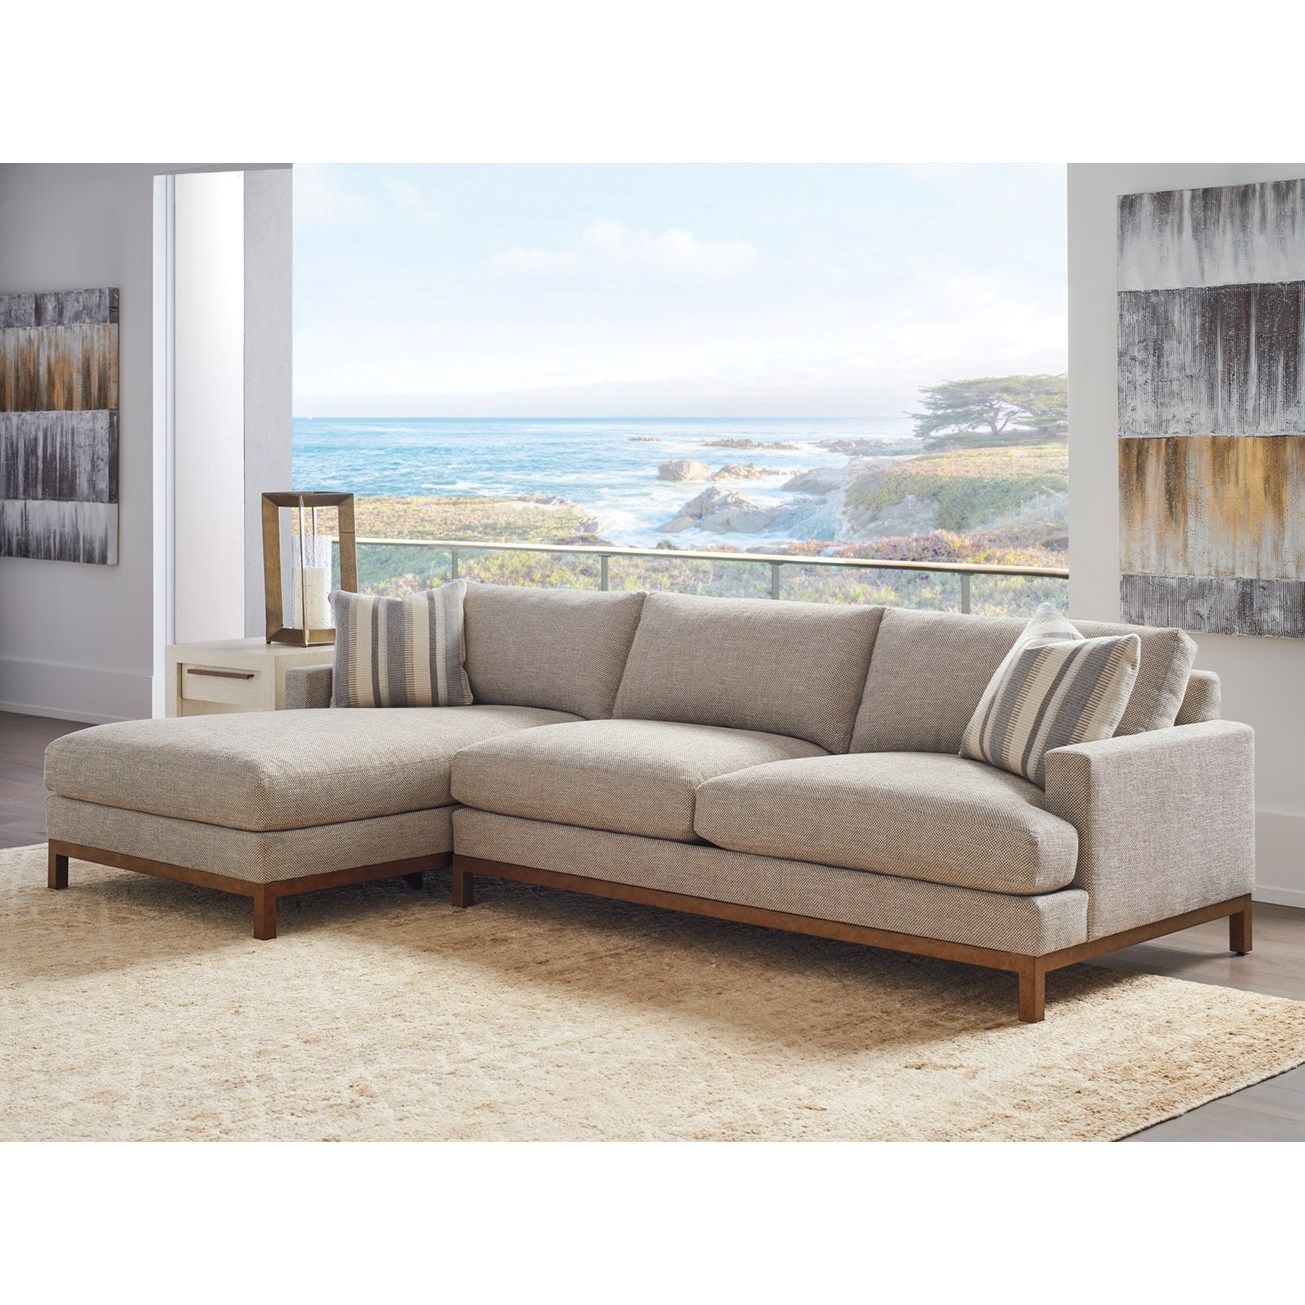 Barclay Butera Upholstery 2-Pc Sectional w/ Brass Base & LAF Chaise by Barclay Butera at Baer's Furniture